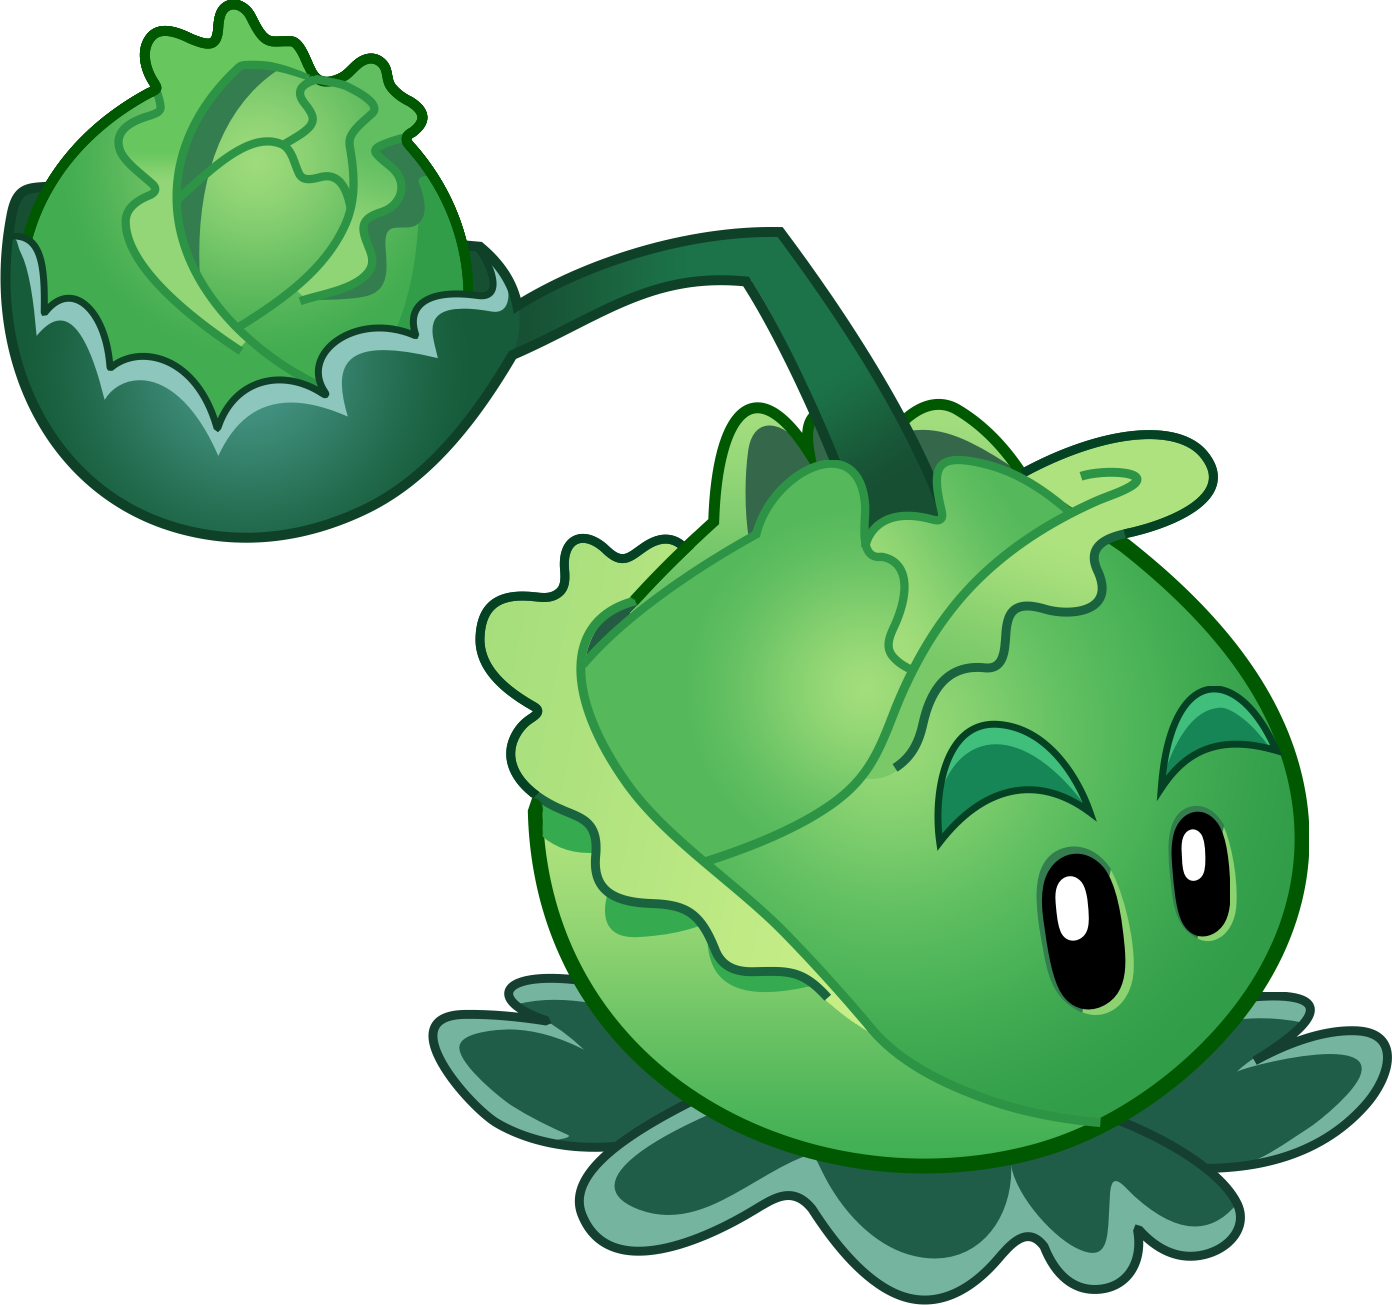 Cabbage clipart cabbage plant. Image pult png plants